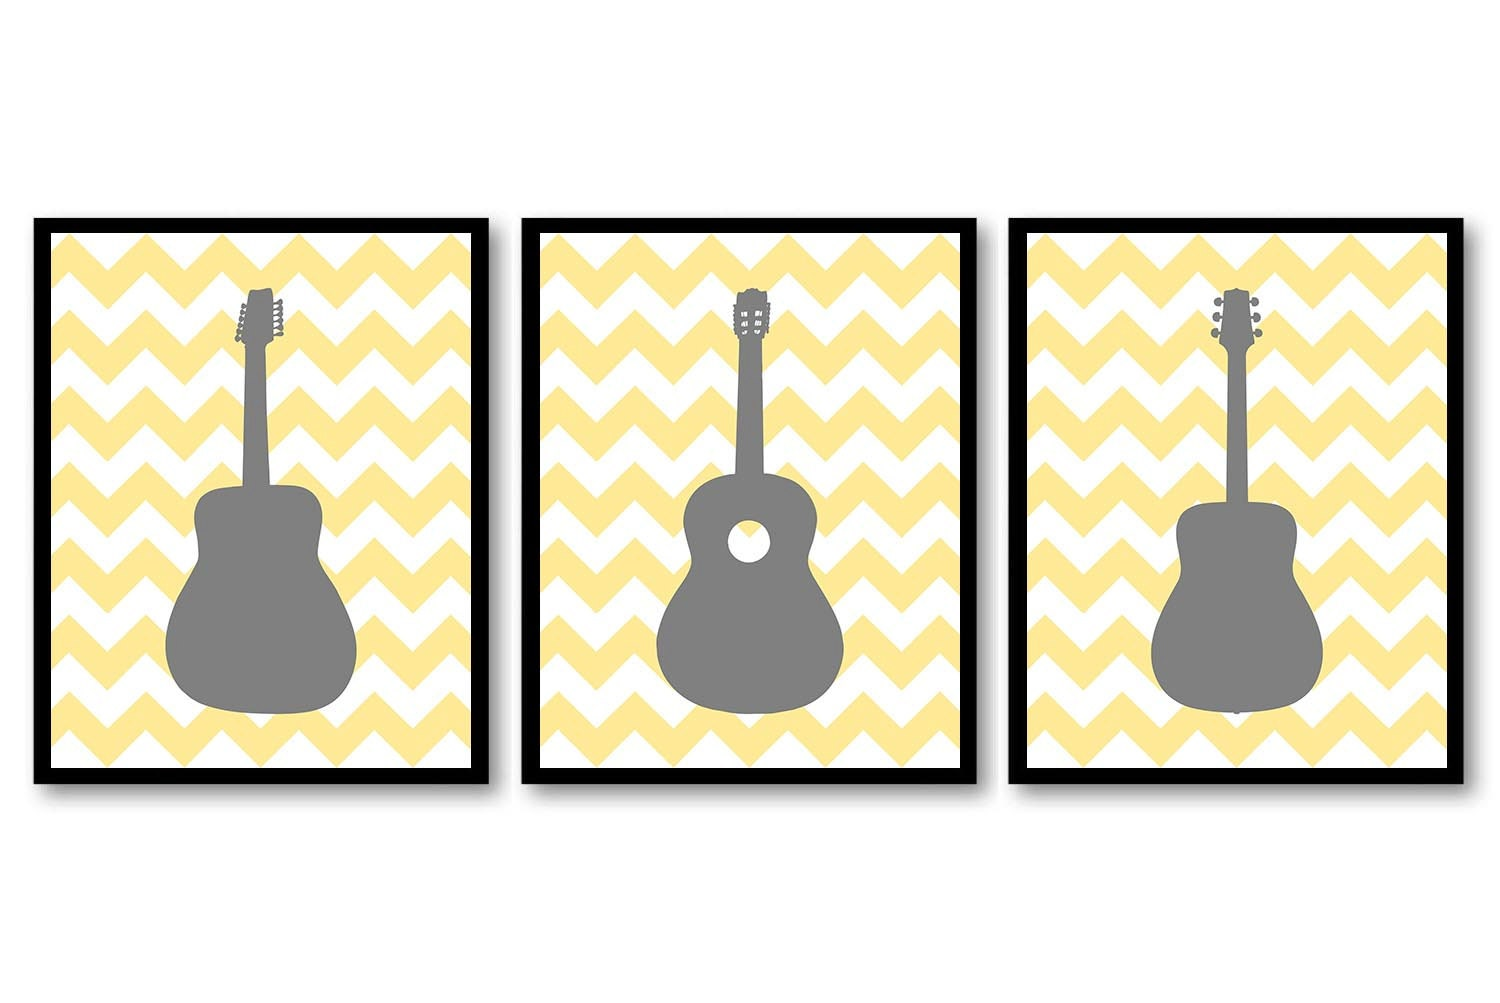 Guitar Nursery Art Nursery Prints Set of 3 Prints Grey Gray Yellow ...